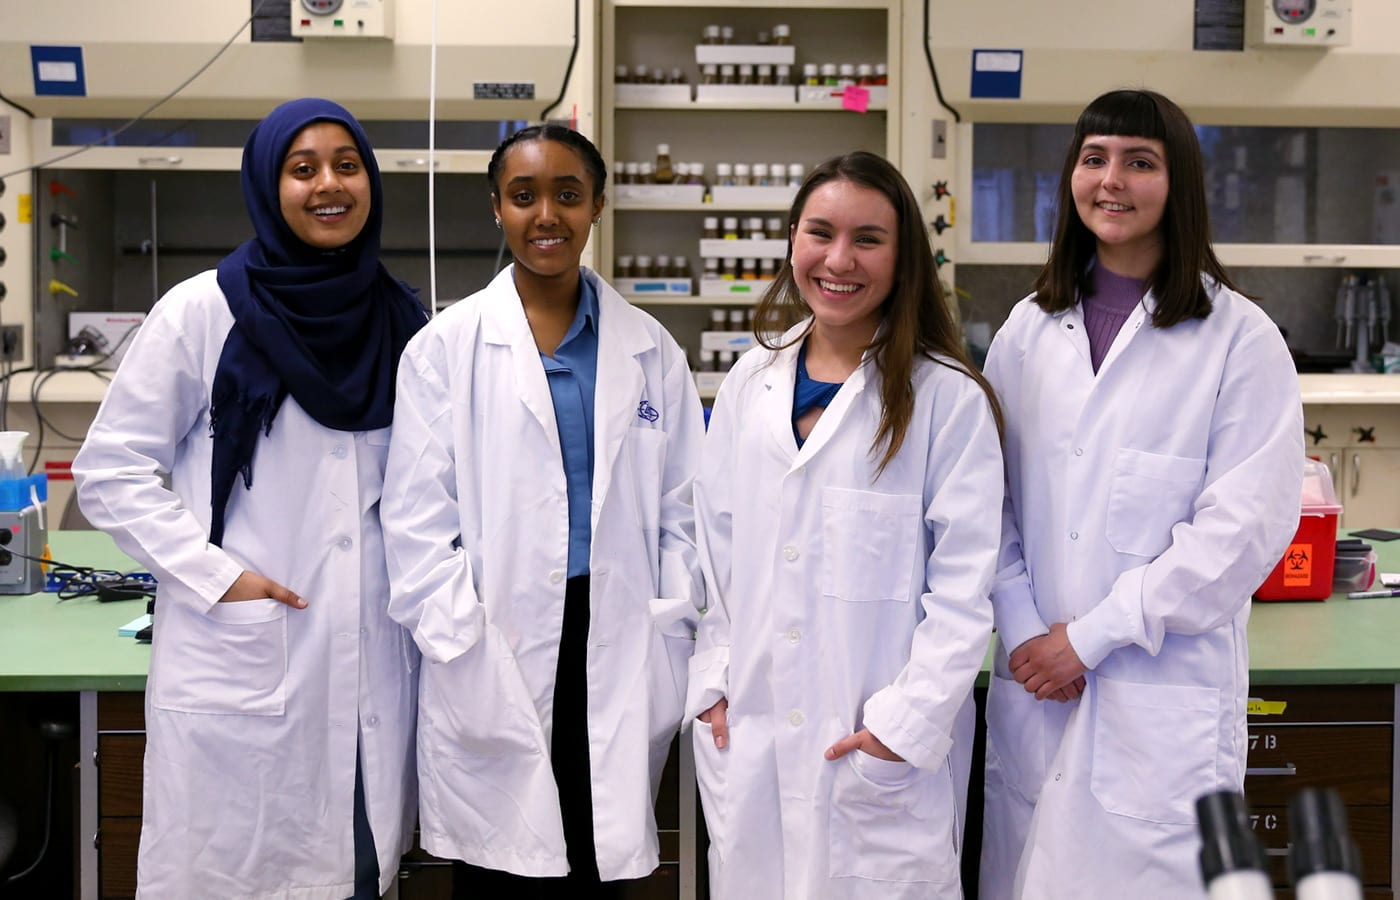 Graduating MARC students (l-r): Nebat Ali, '19 Microbiology, Mulatwa Haile, '19 Biological Sciences, Brianna Urbina, '19 Biological Sciences, and Natanya Villegas, '19 Microbiology. Photo: Roman Goshev.